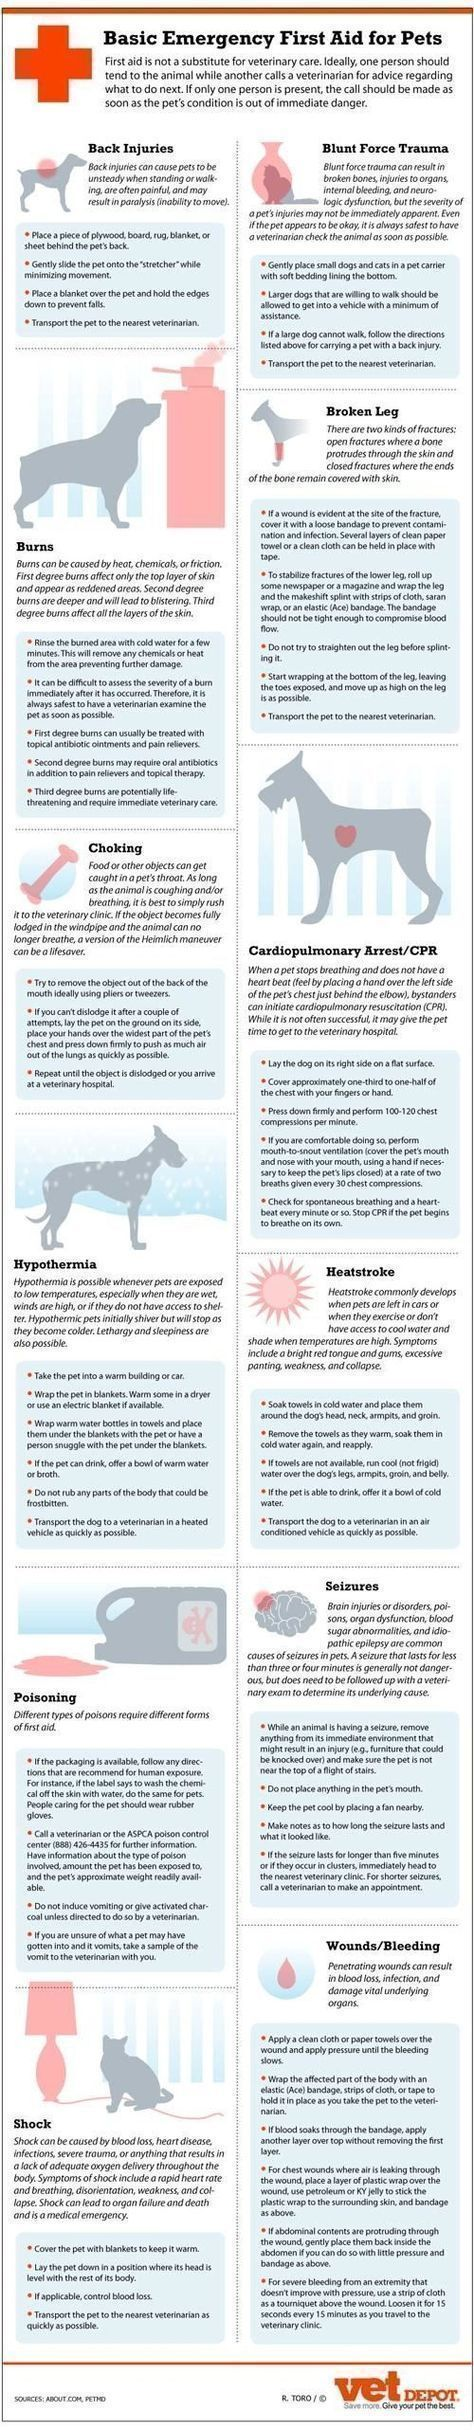 Best 25 great dane information ideas on pinterest great dane here are 30 of the best charts we have gathered for dog owners great information nvjuhfo Choice Image